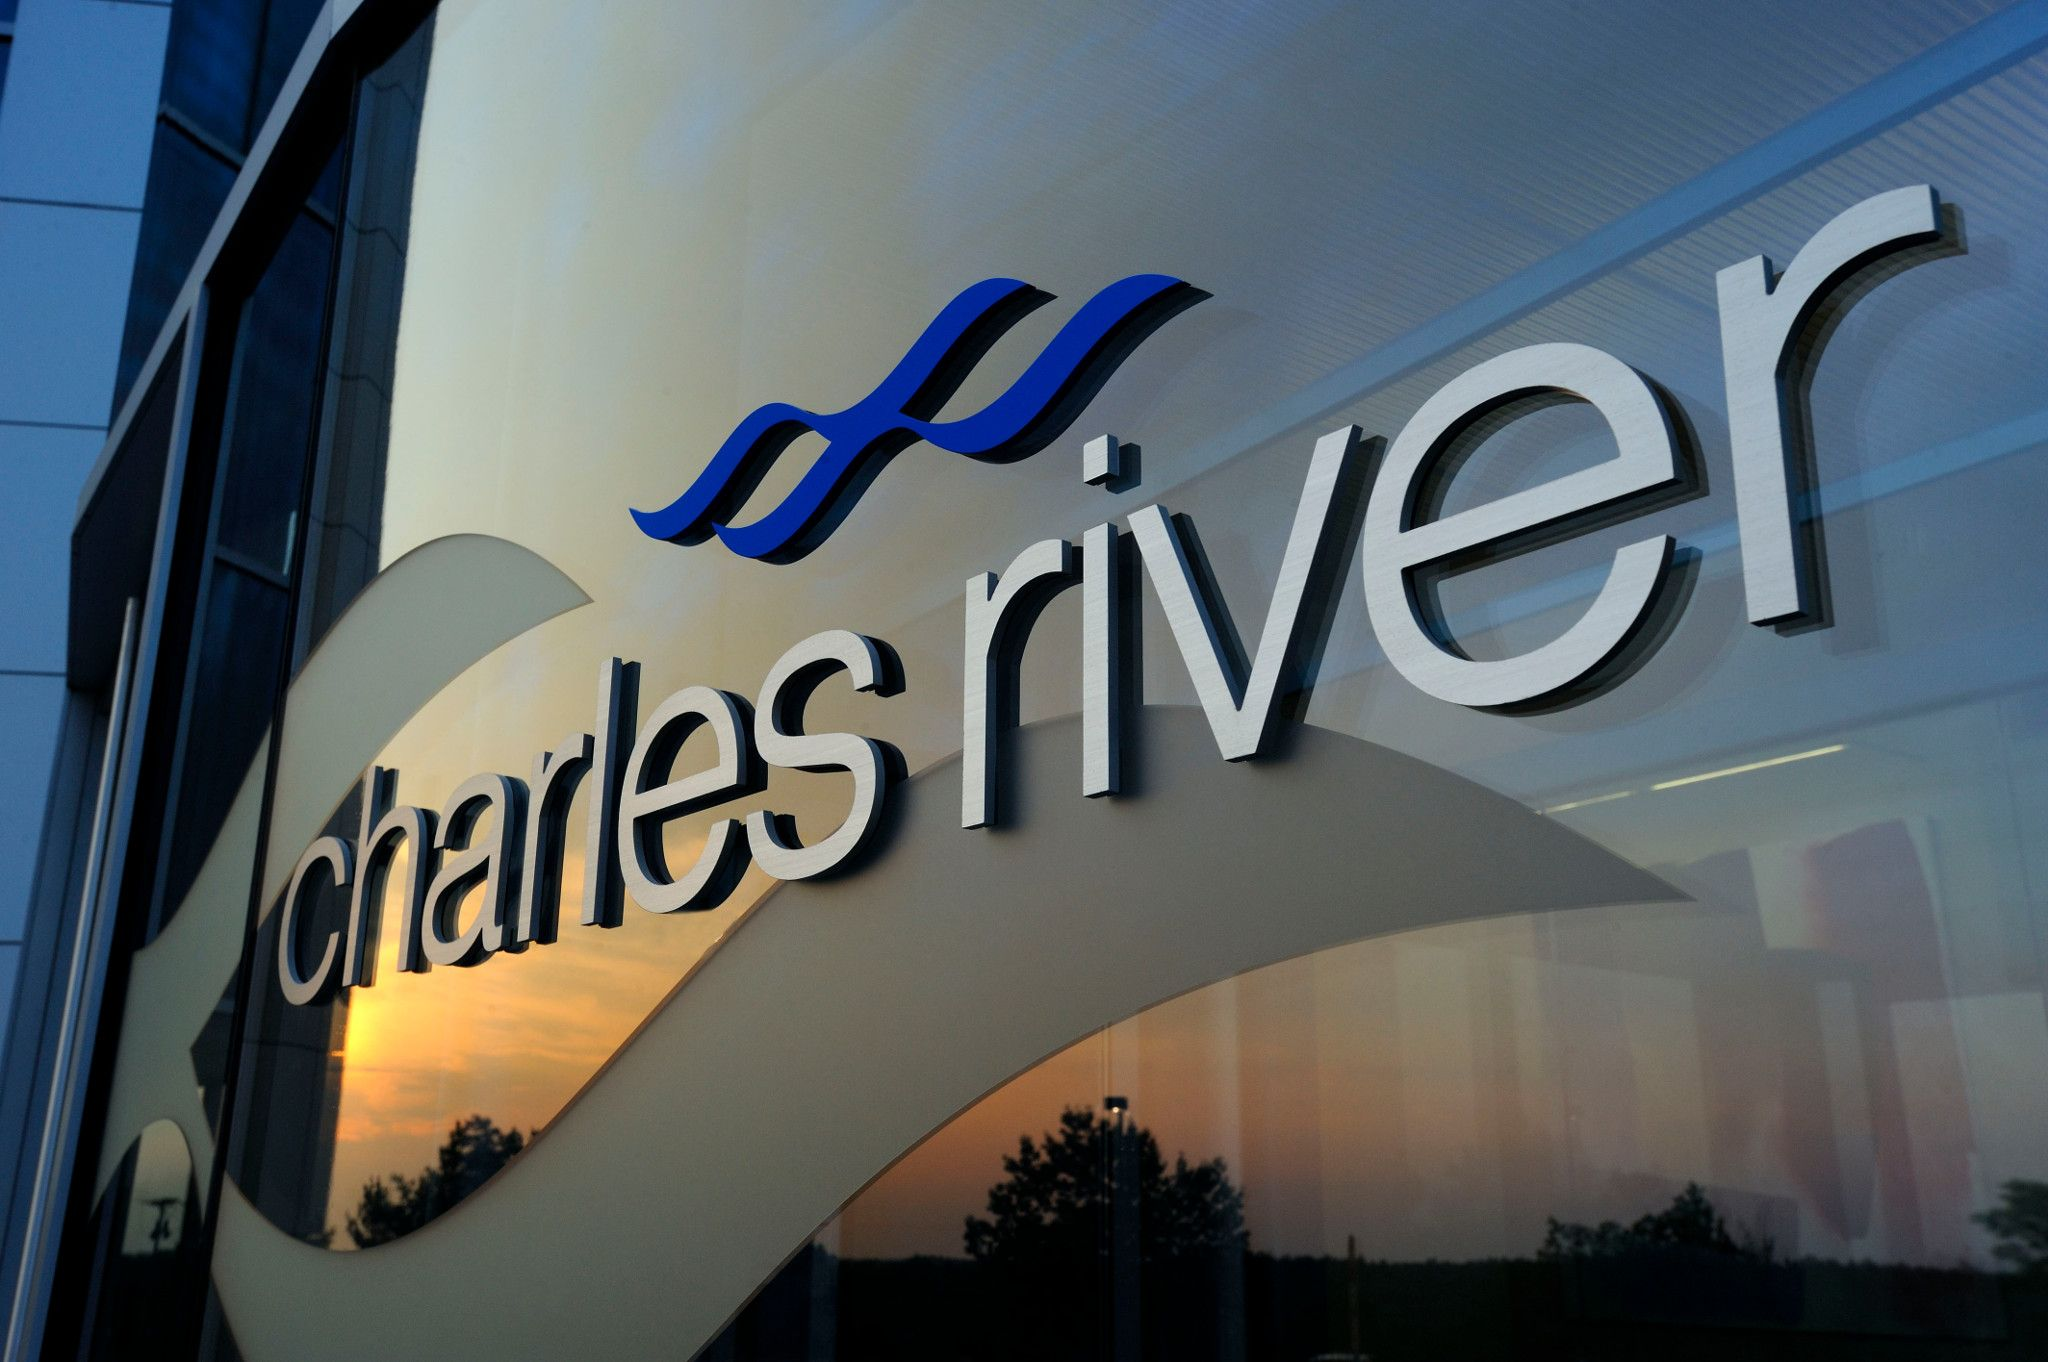 image of Charles River headquarters for Discovery